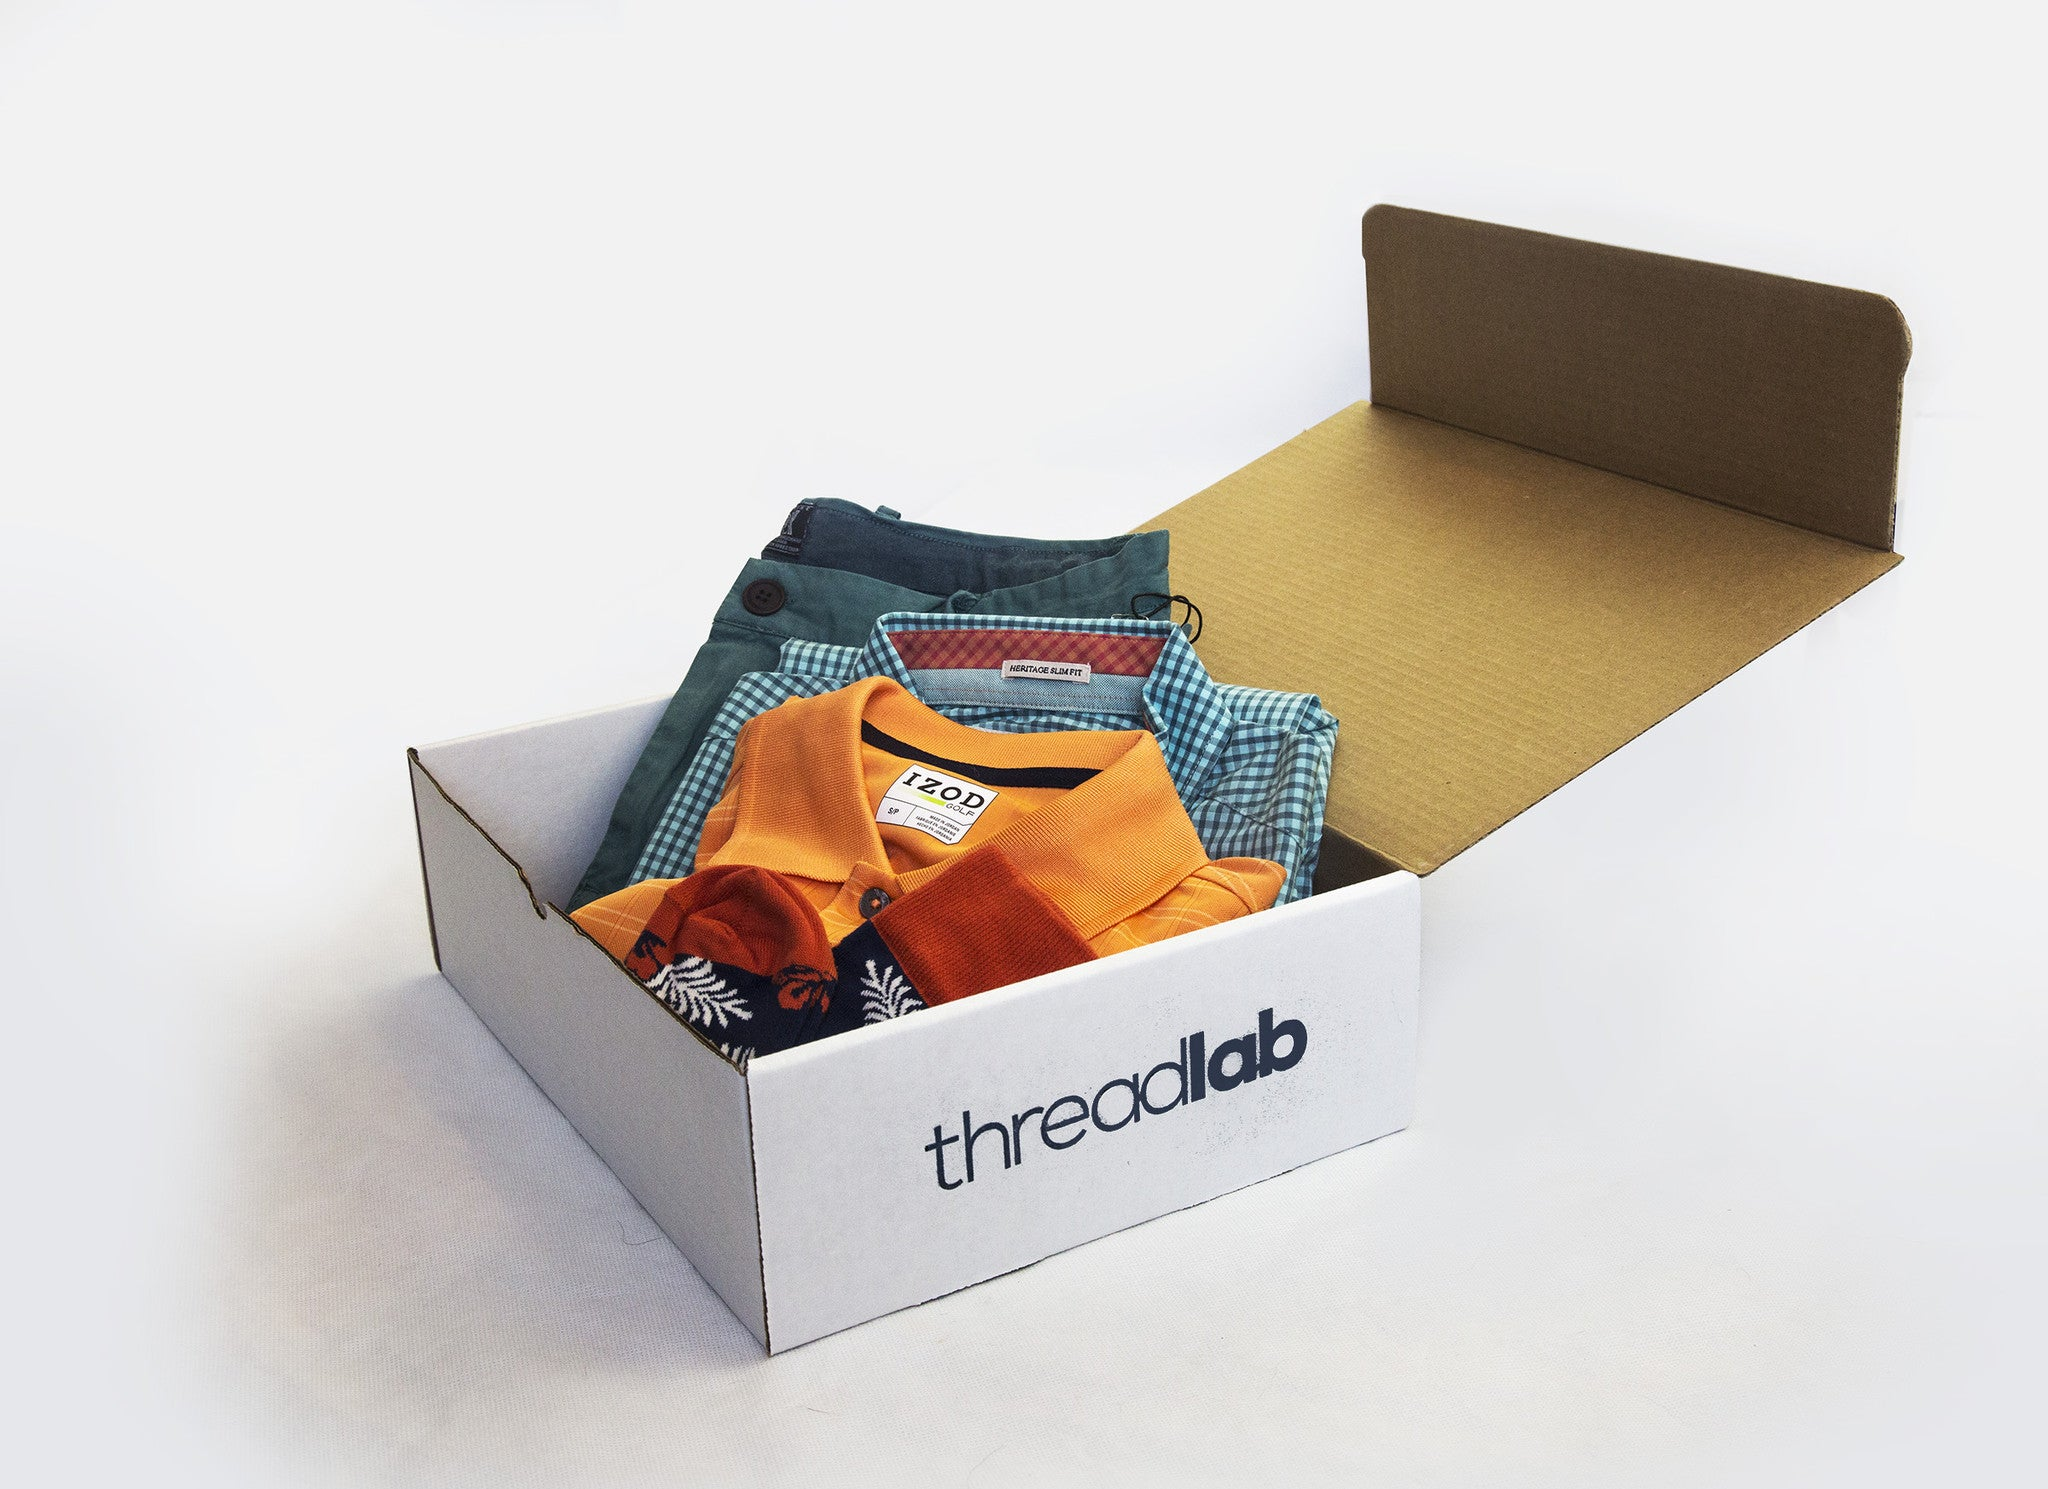 ThreadLab Quarterly Essentials Box